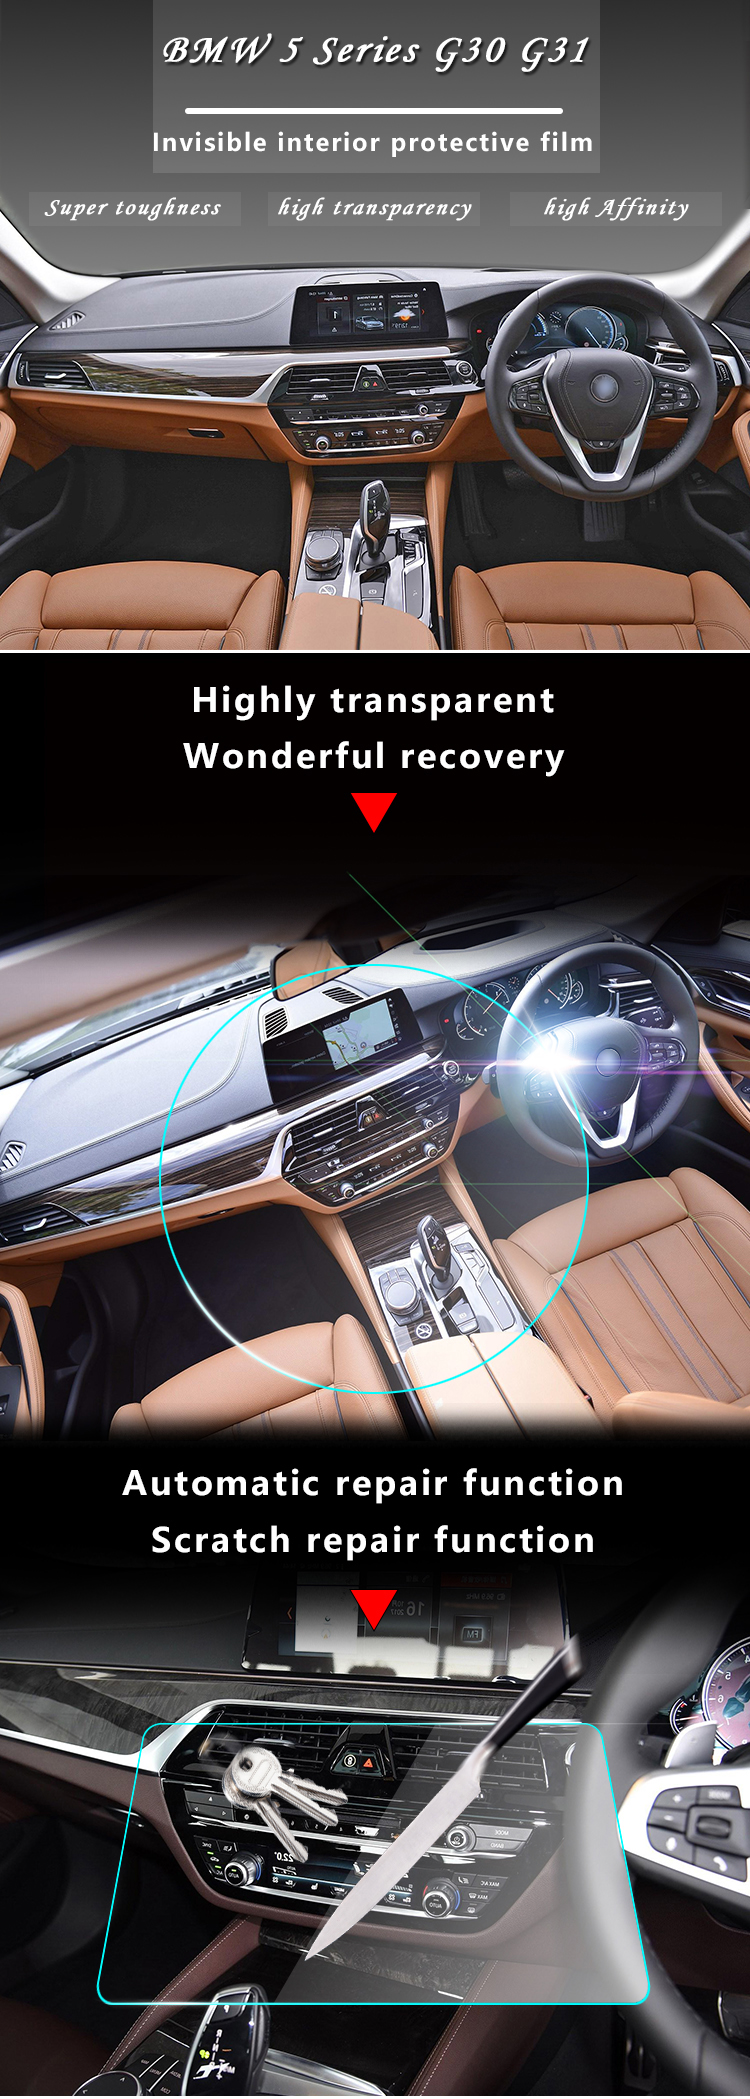 2019 Car Interior Trim Dashboard Cd Panel Clear Paint Tpu Protective Bra Film Stickers For Bmw 5 Series 525i 530i 540i G30 Rhd 2018 From Suozhi1990